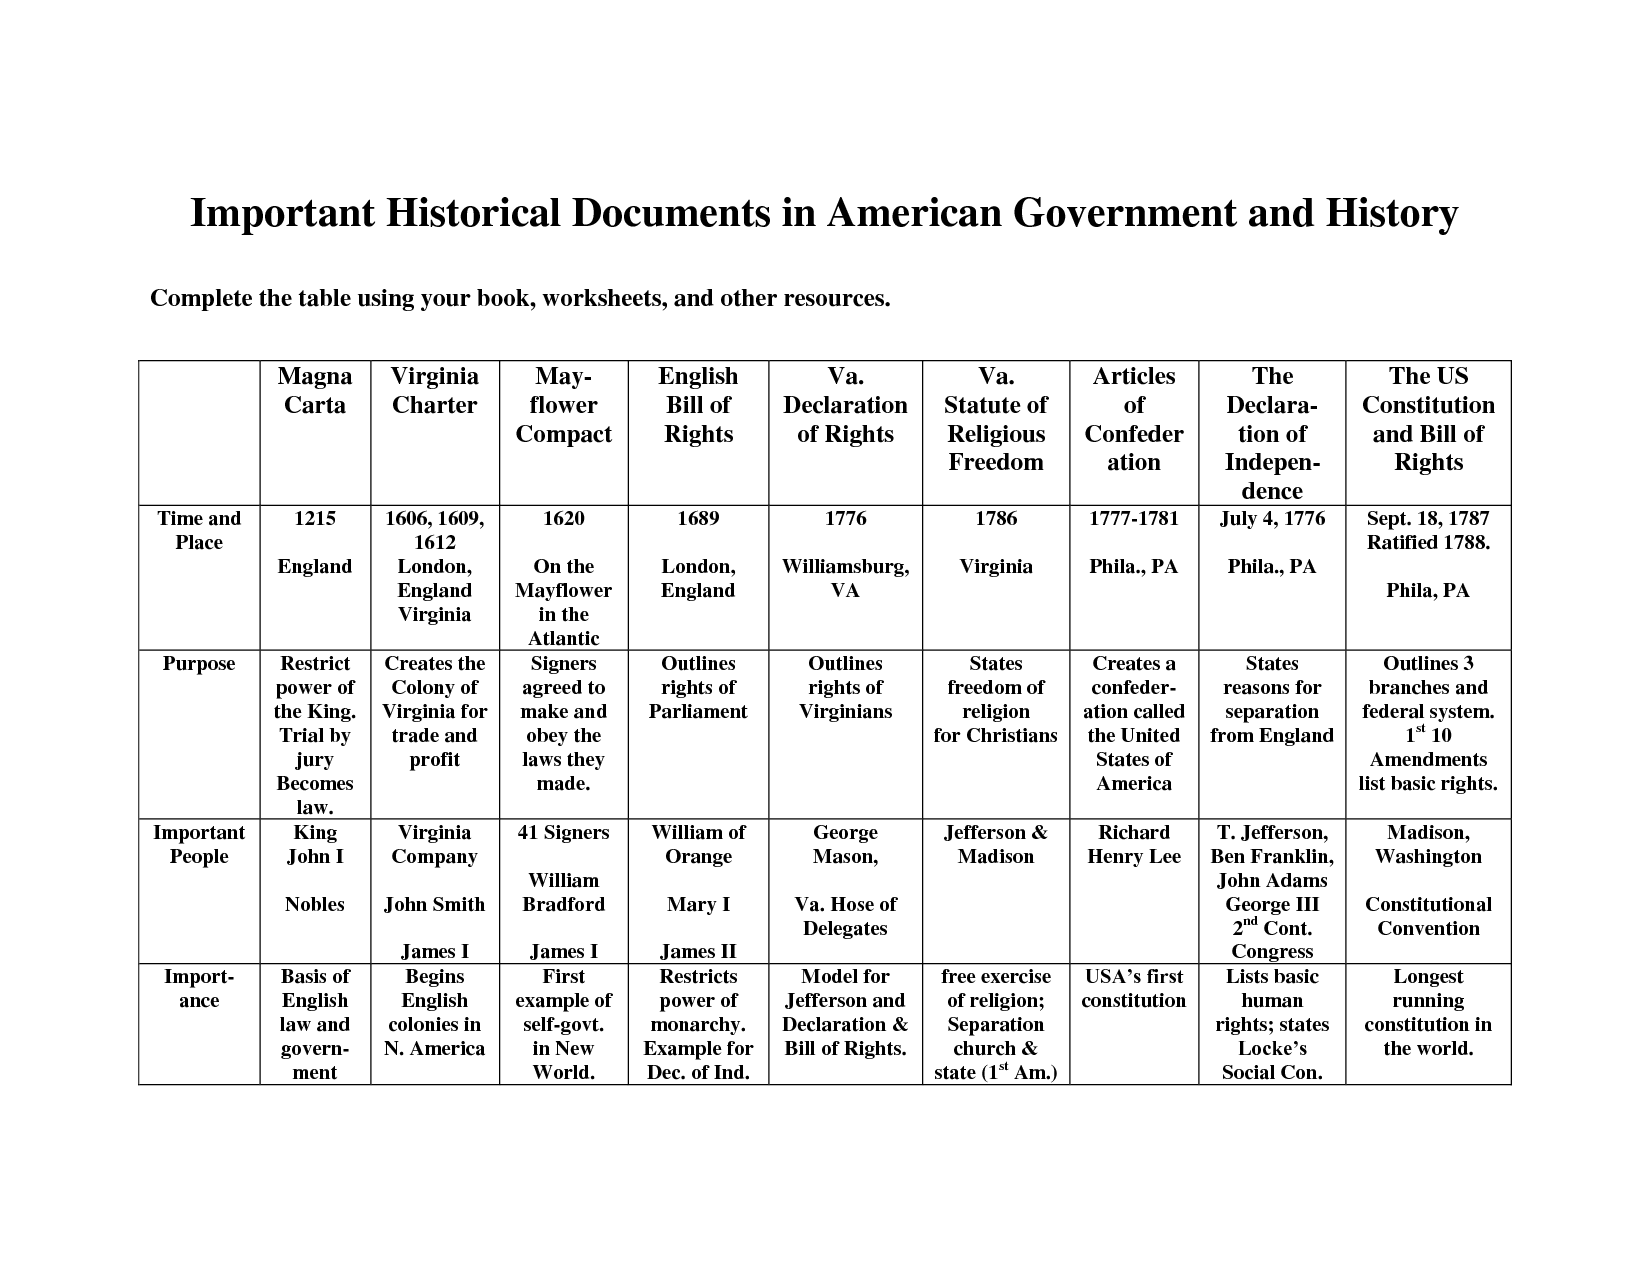 worksheet American Government Worksheets virginia government worksheet important historical documents in american and history